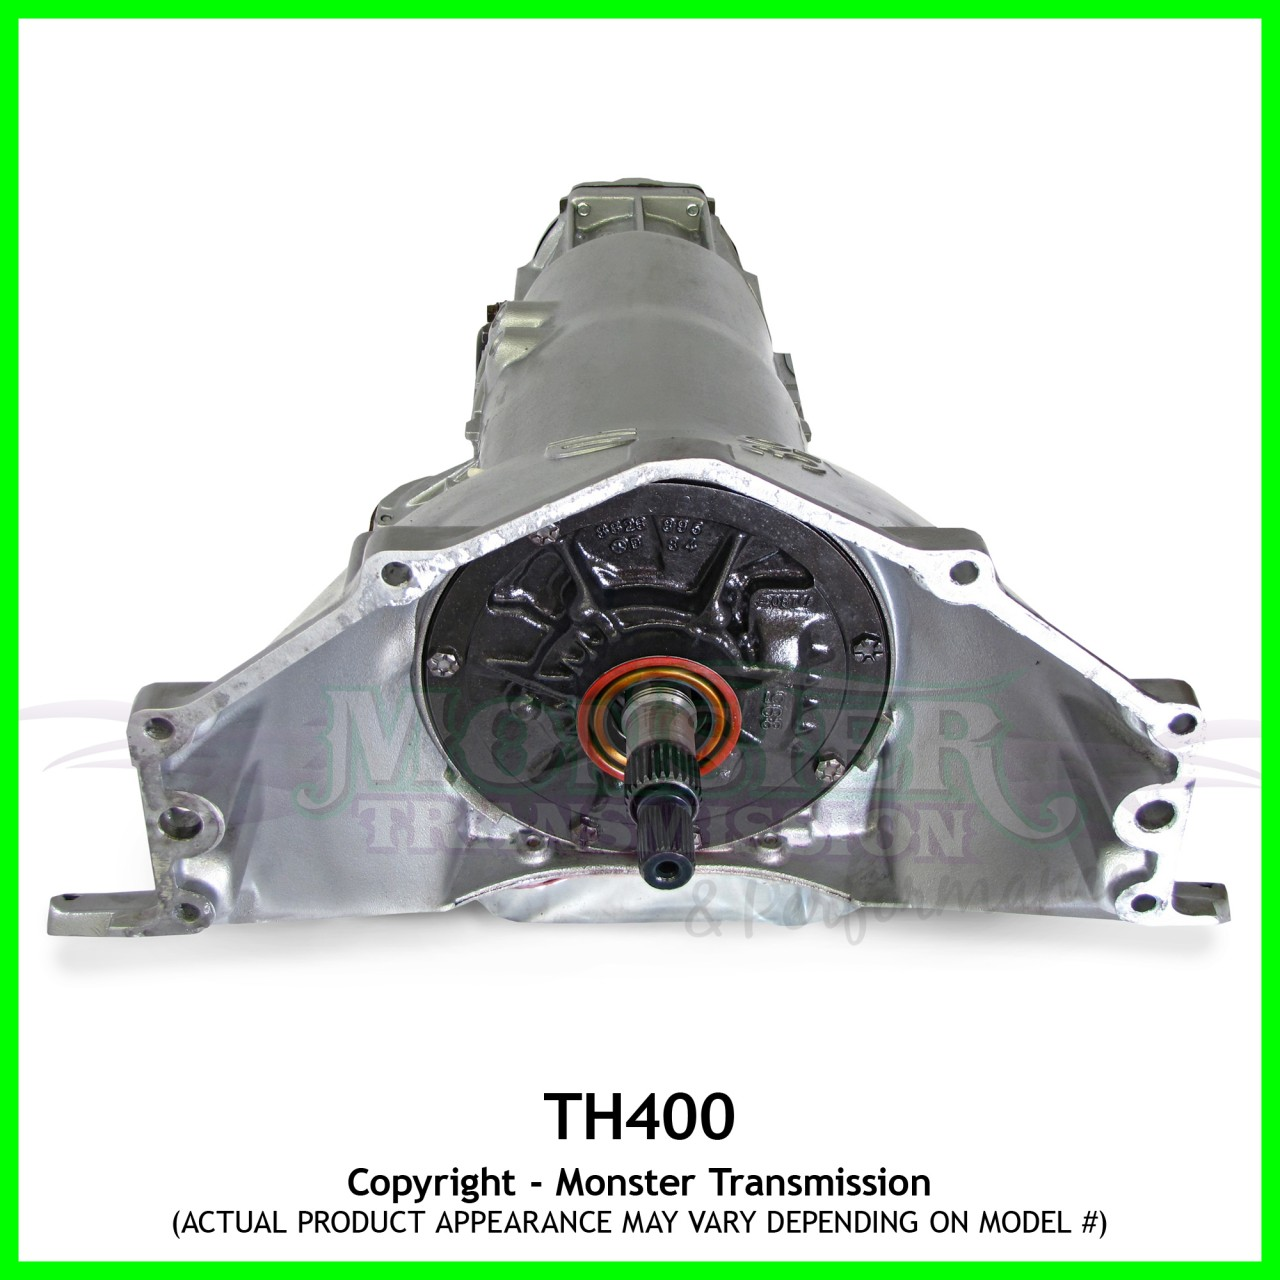 hight resolution of turbo 400 th400 transmission heavy duty performance 4 tail th400 free shipping heavy duty th400 heavy duty turbo 400 gm th400 th 400